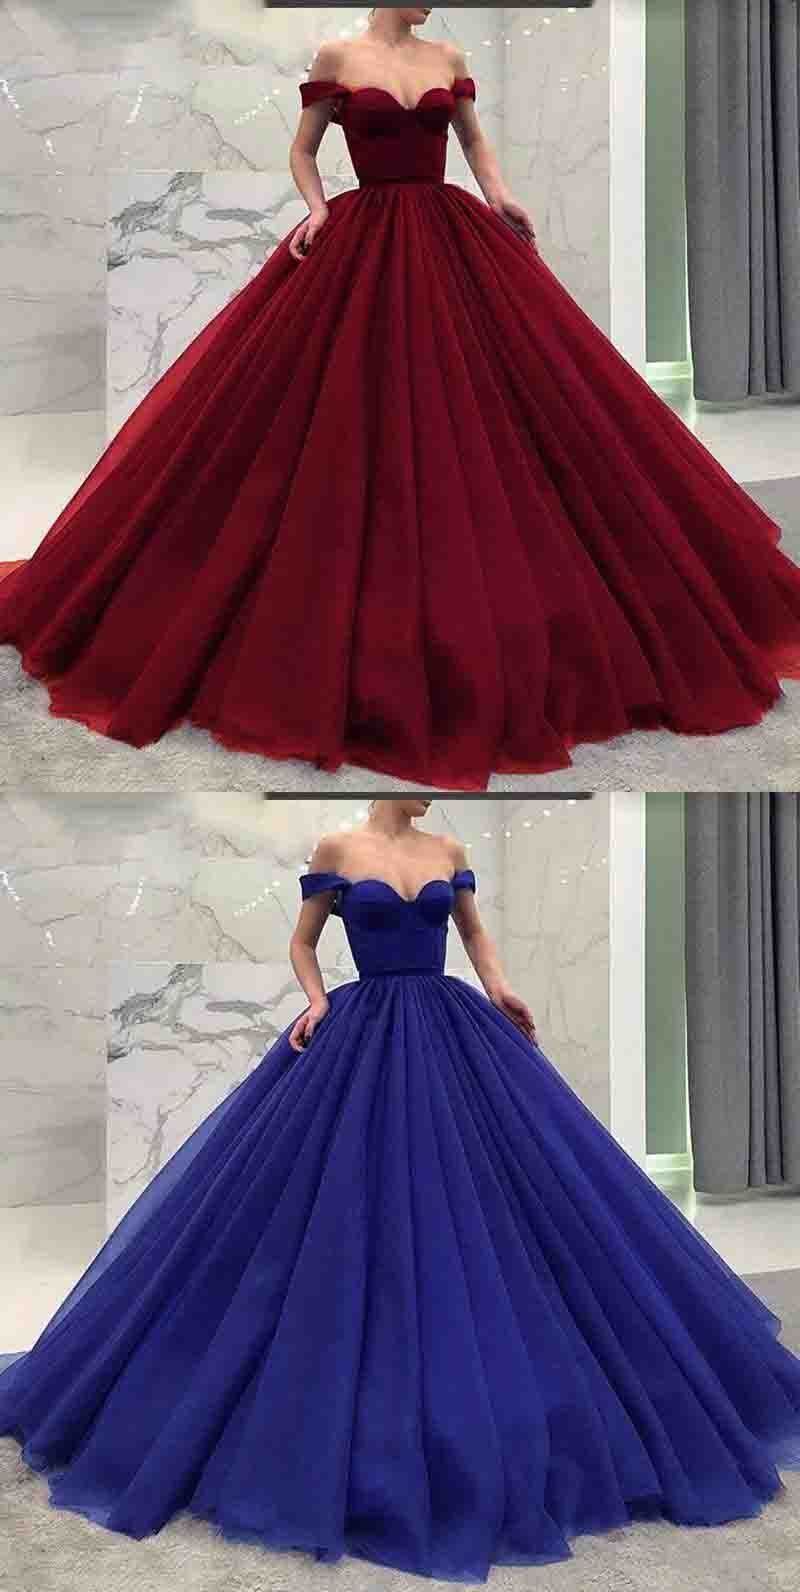 Fashionable Poofy Ball Gown Off the Shoulder Prom Dresses in 2019 ... 13076fe2e8b0